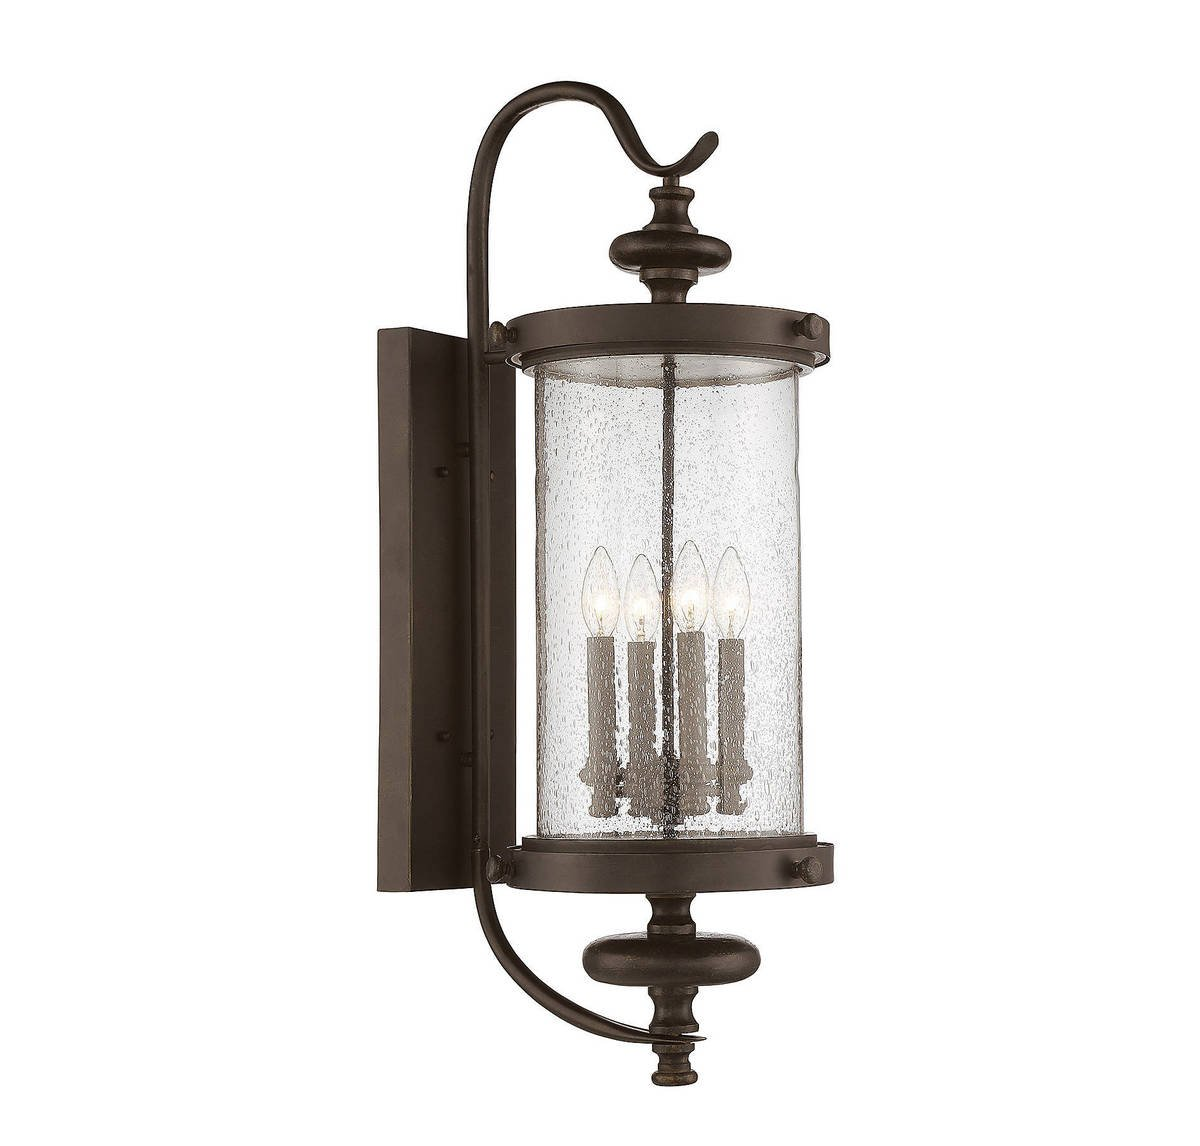 Savoy House 5-1224-40 Four Light Wall Lantern in Walnut Patina